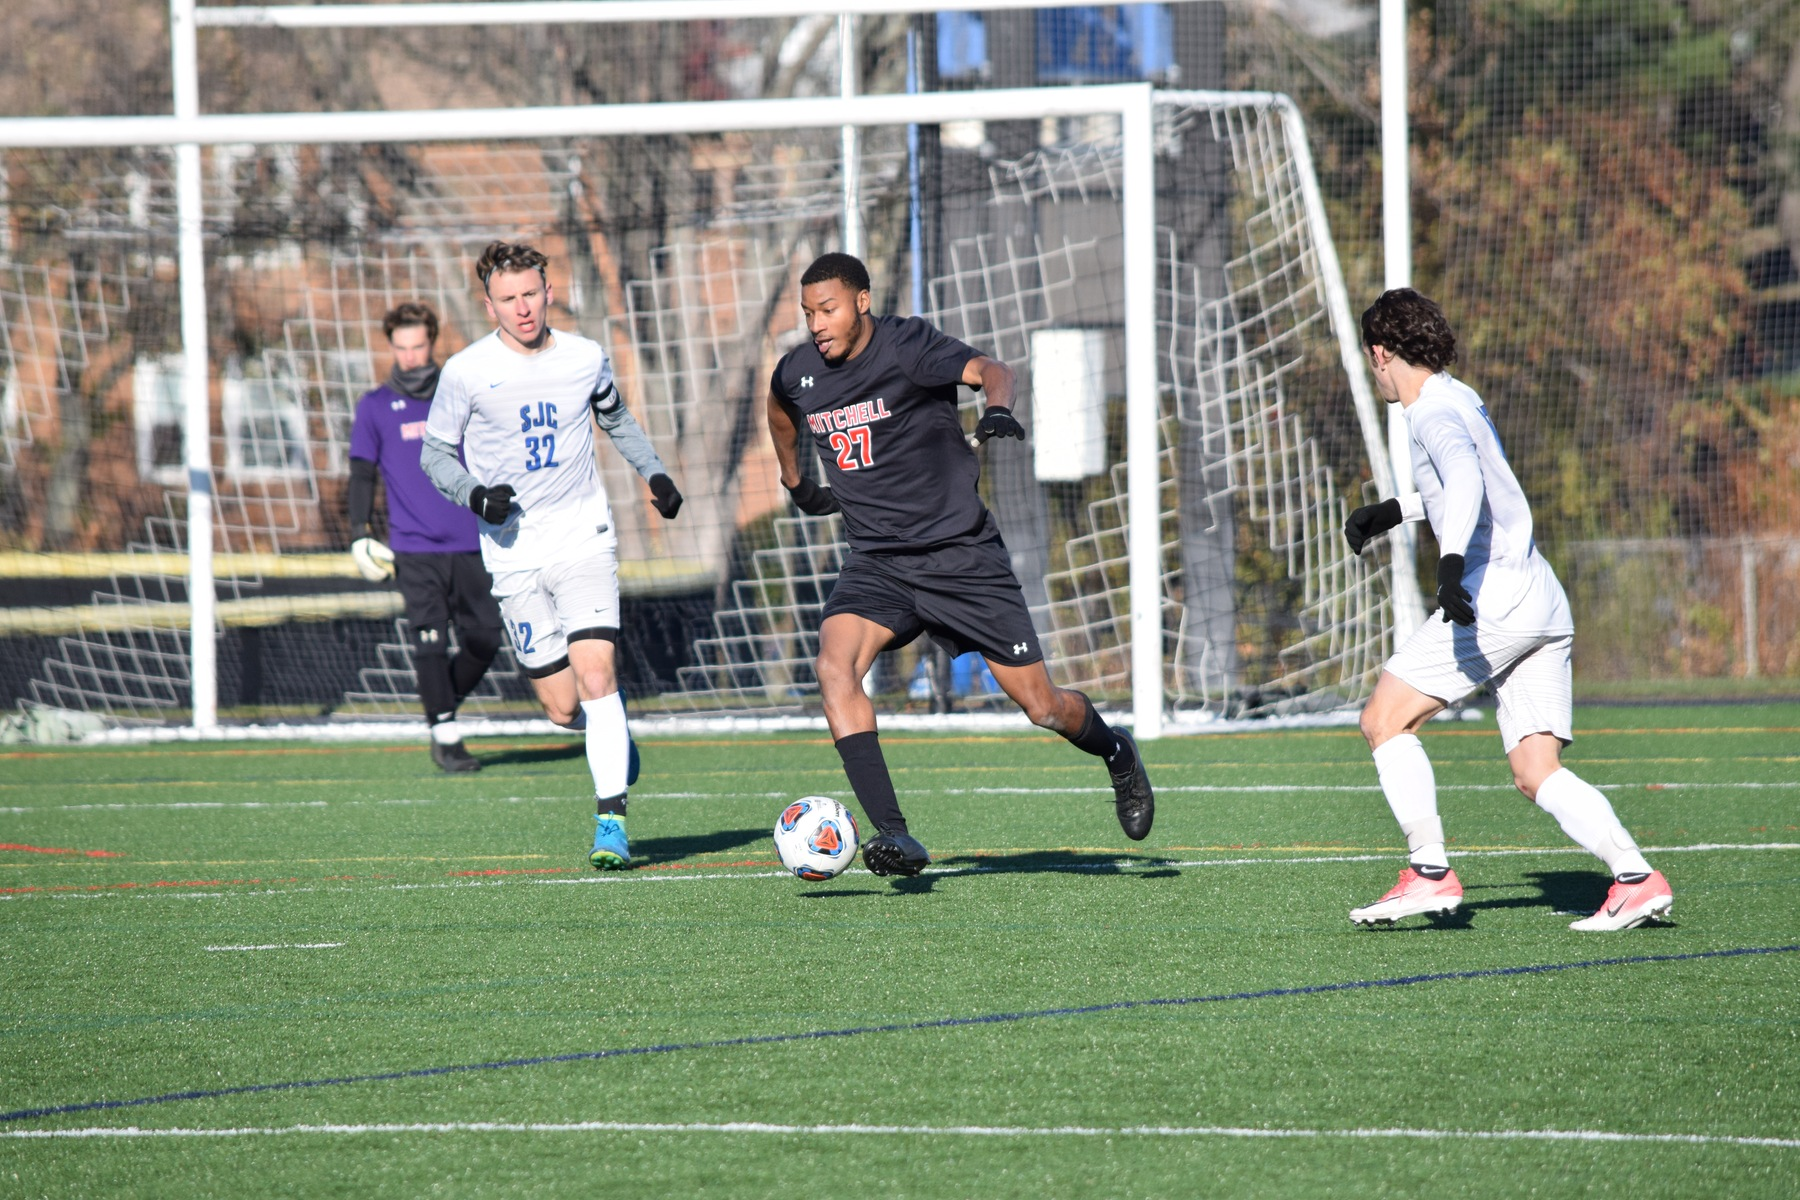 Men's Soccer Falls 2-1 to SJC in NCAA Debut